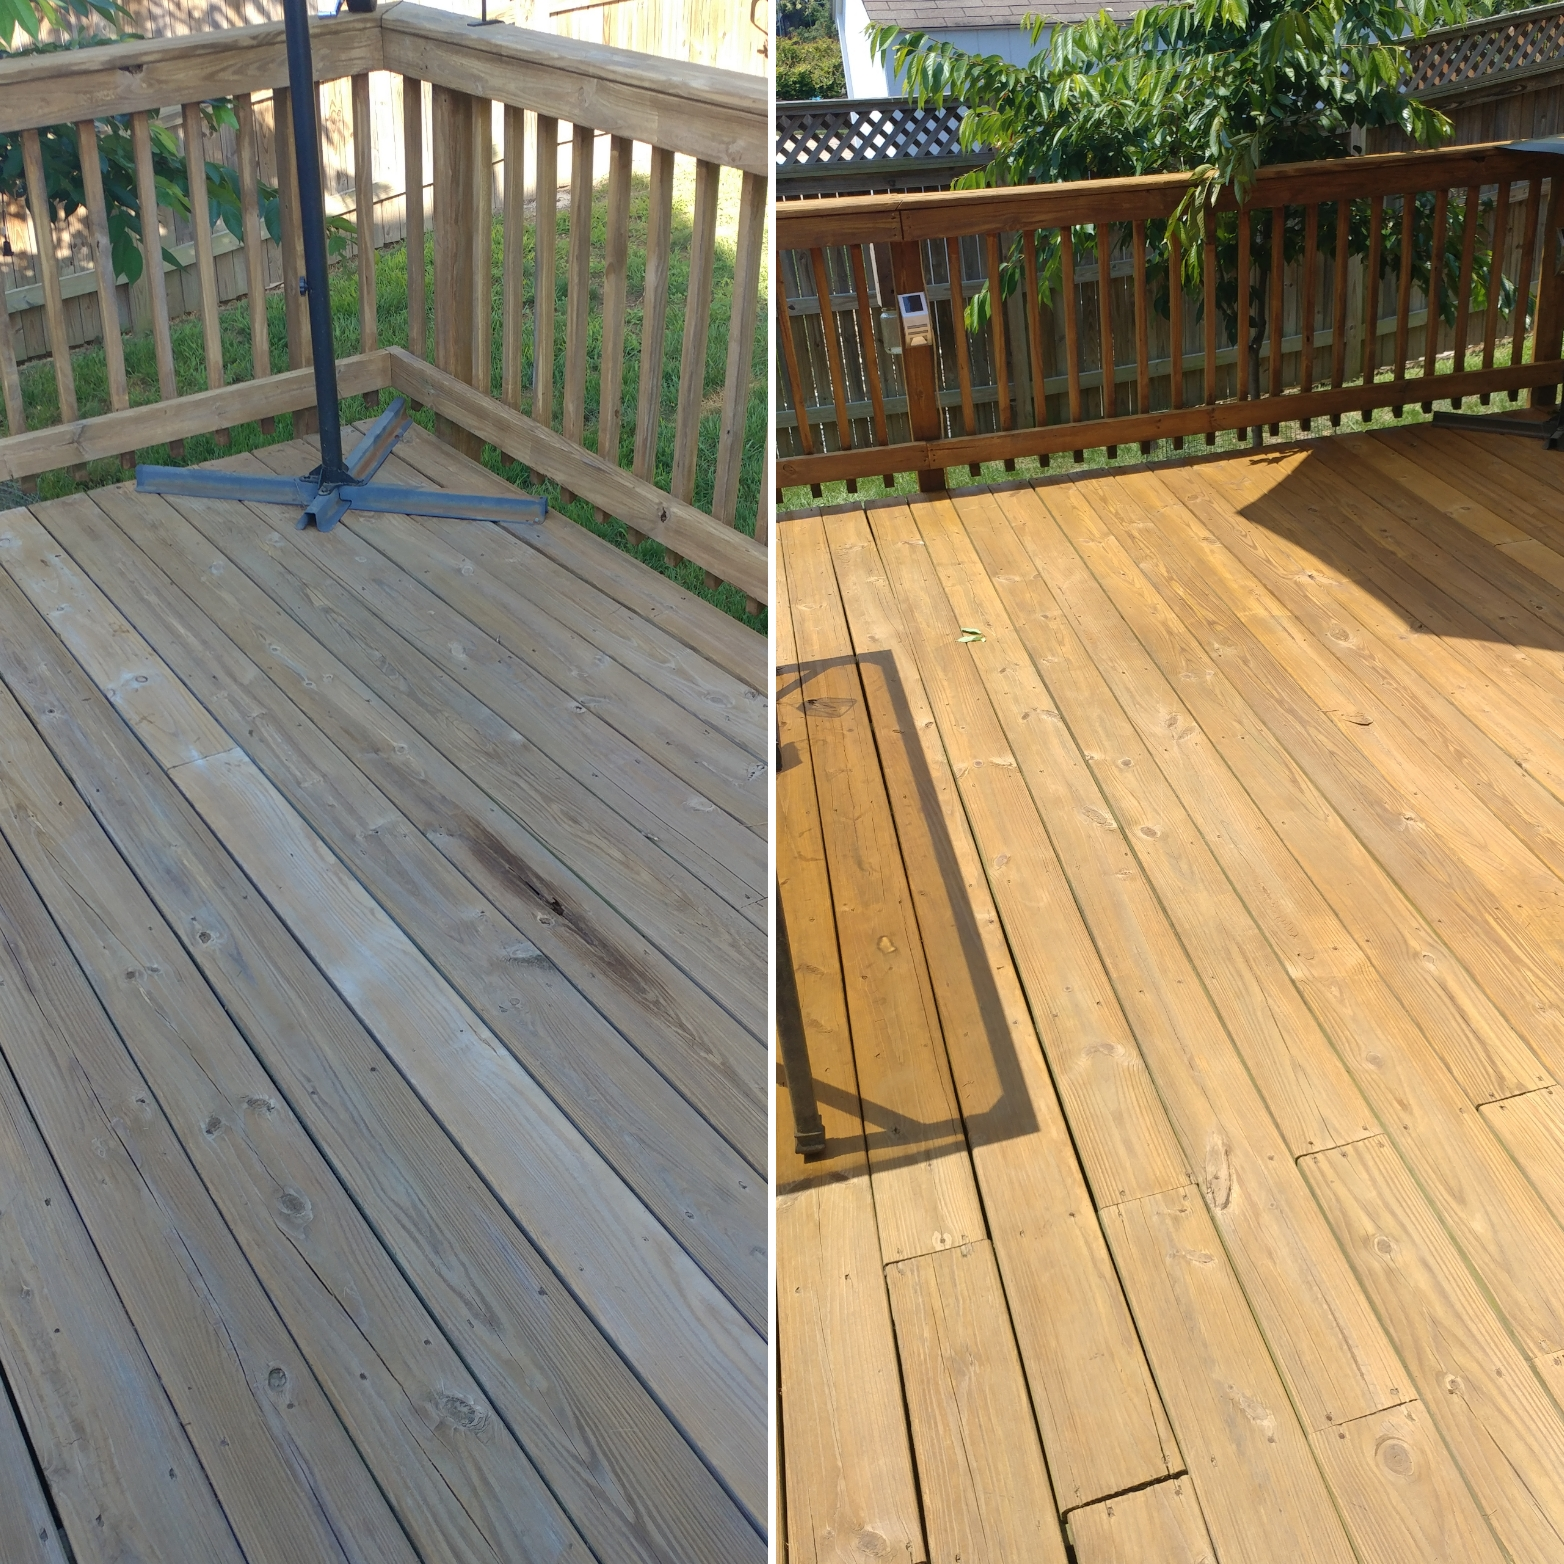 Restore-A-Deck Wood Stain Review